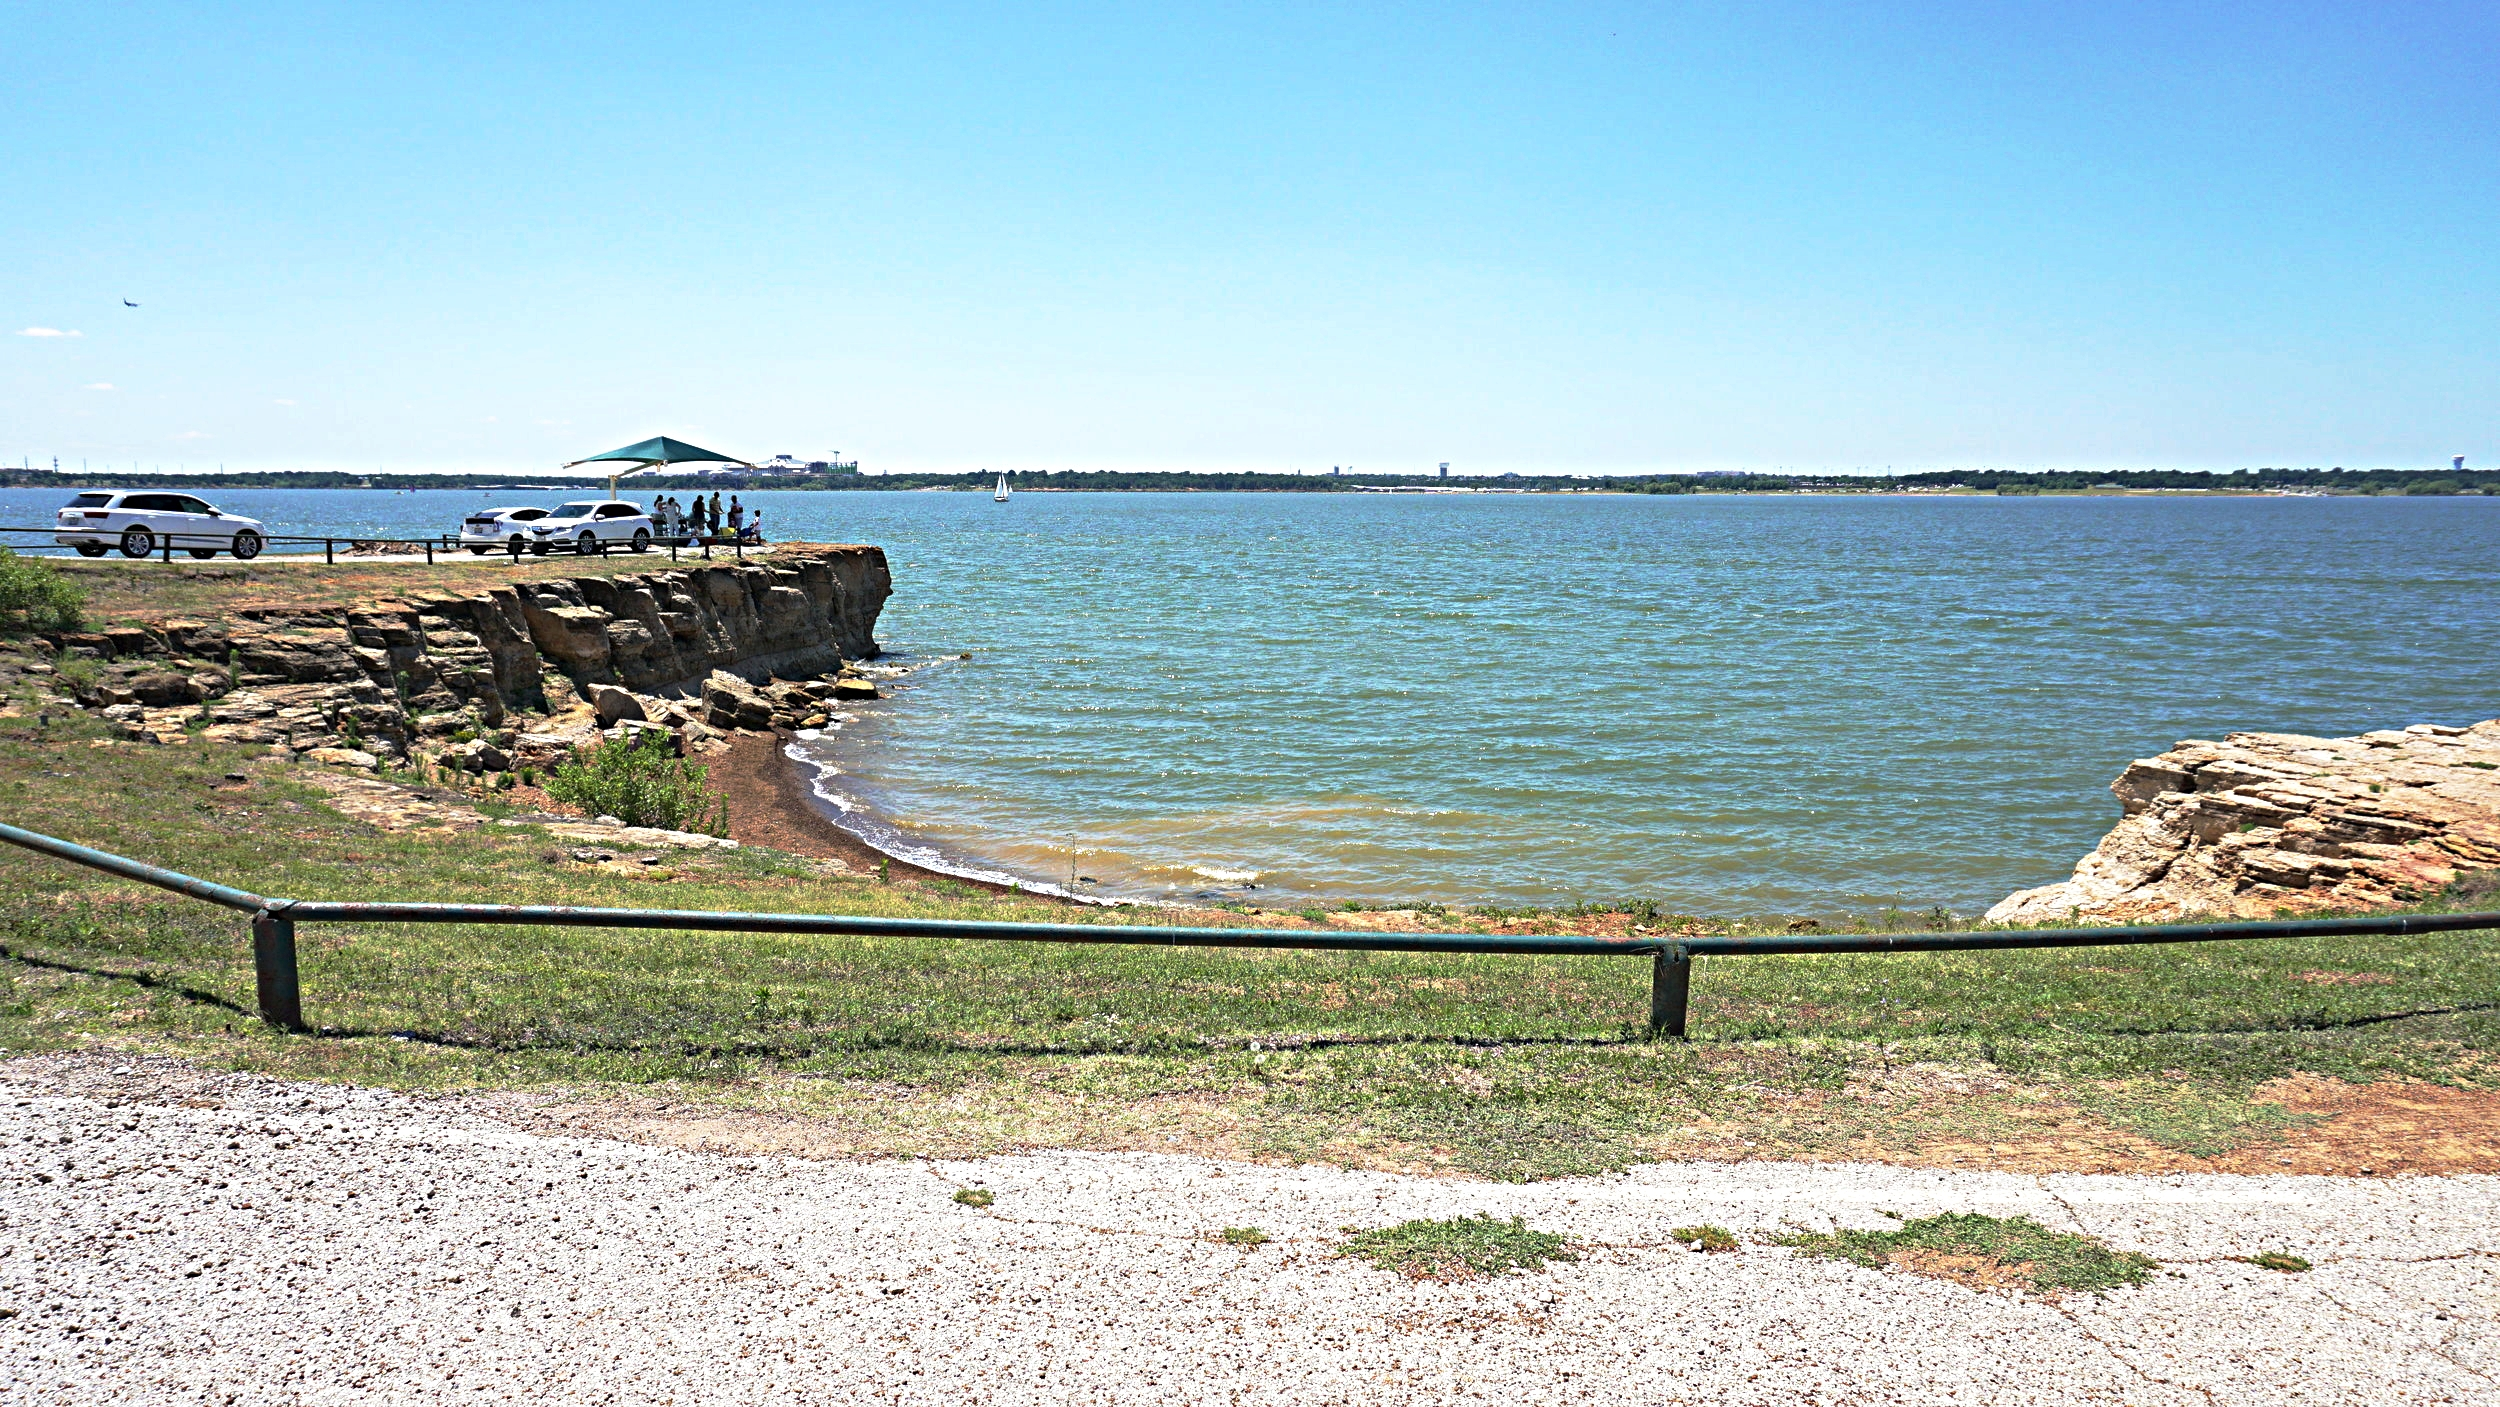 Rockledge Park - Grapevine Lake